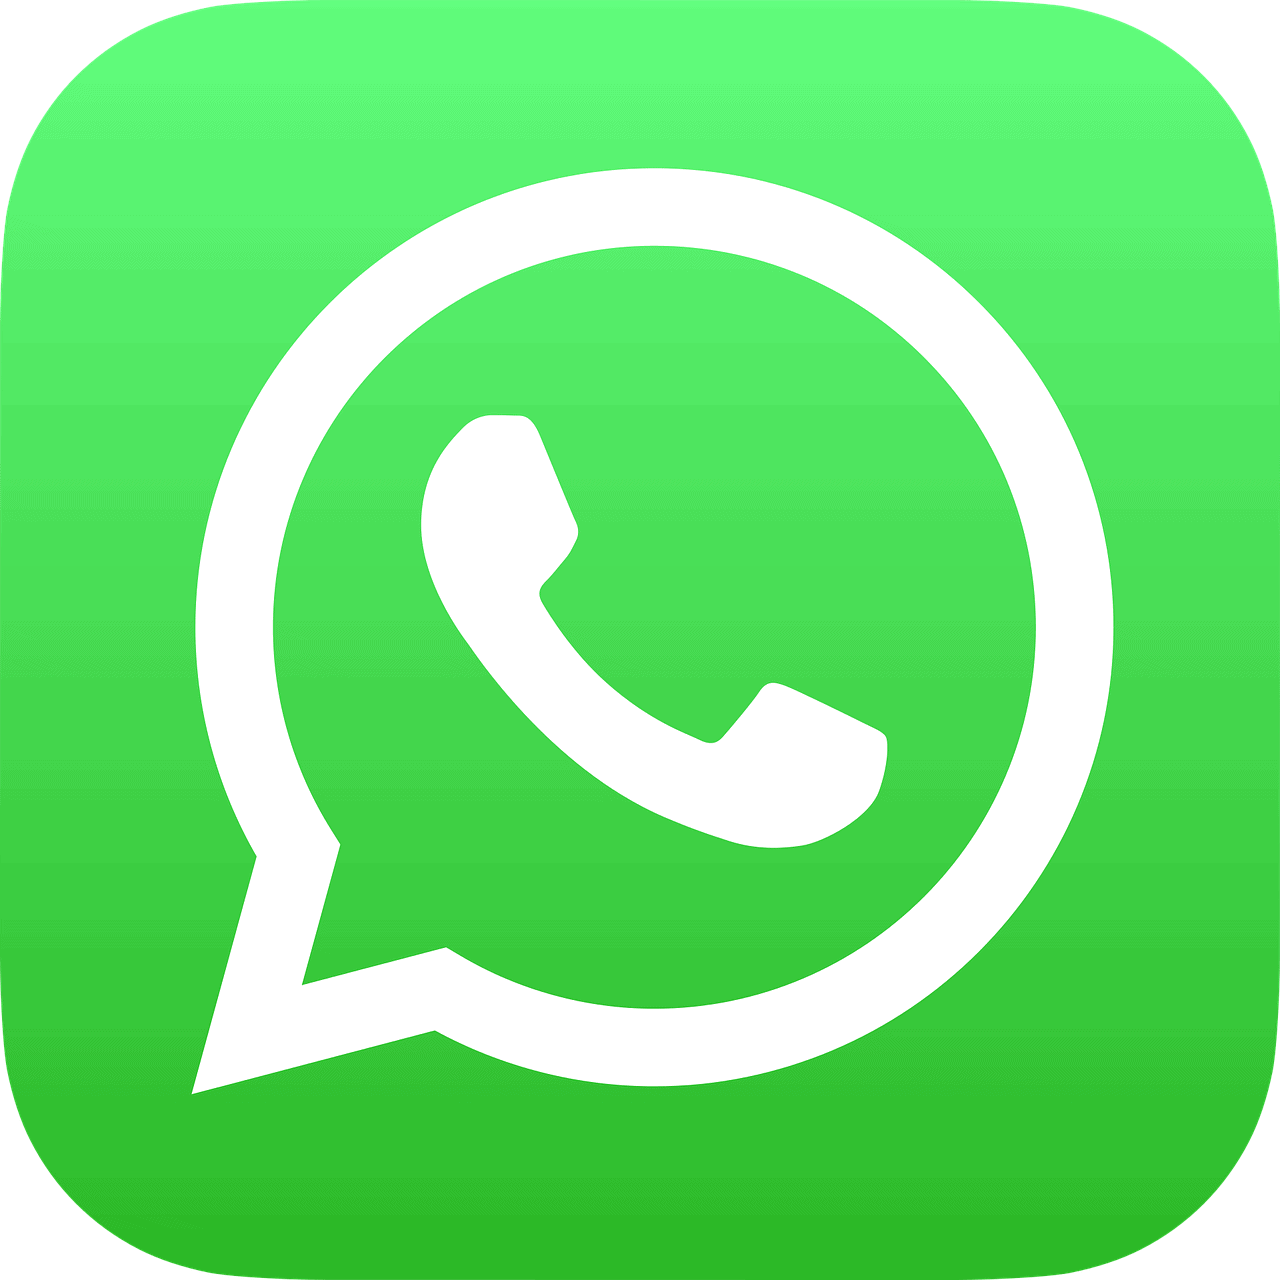 whatsapp, chat, posts